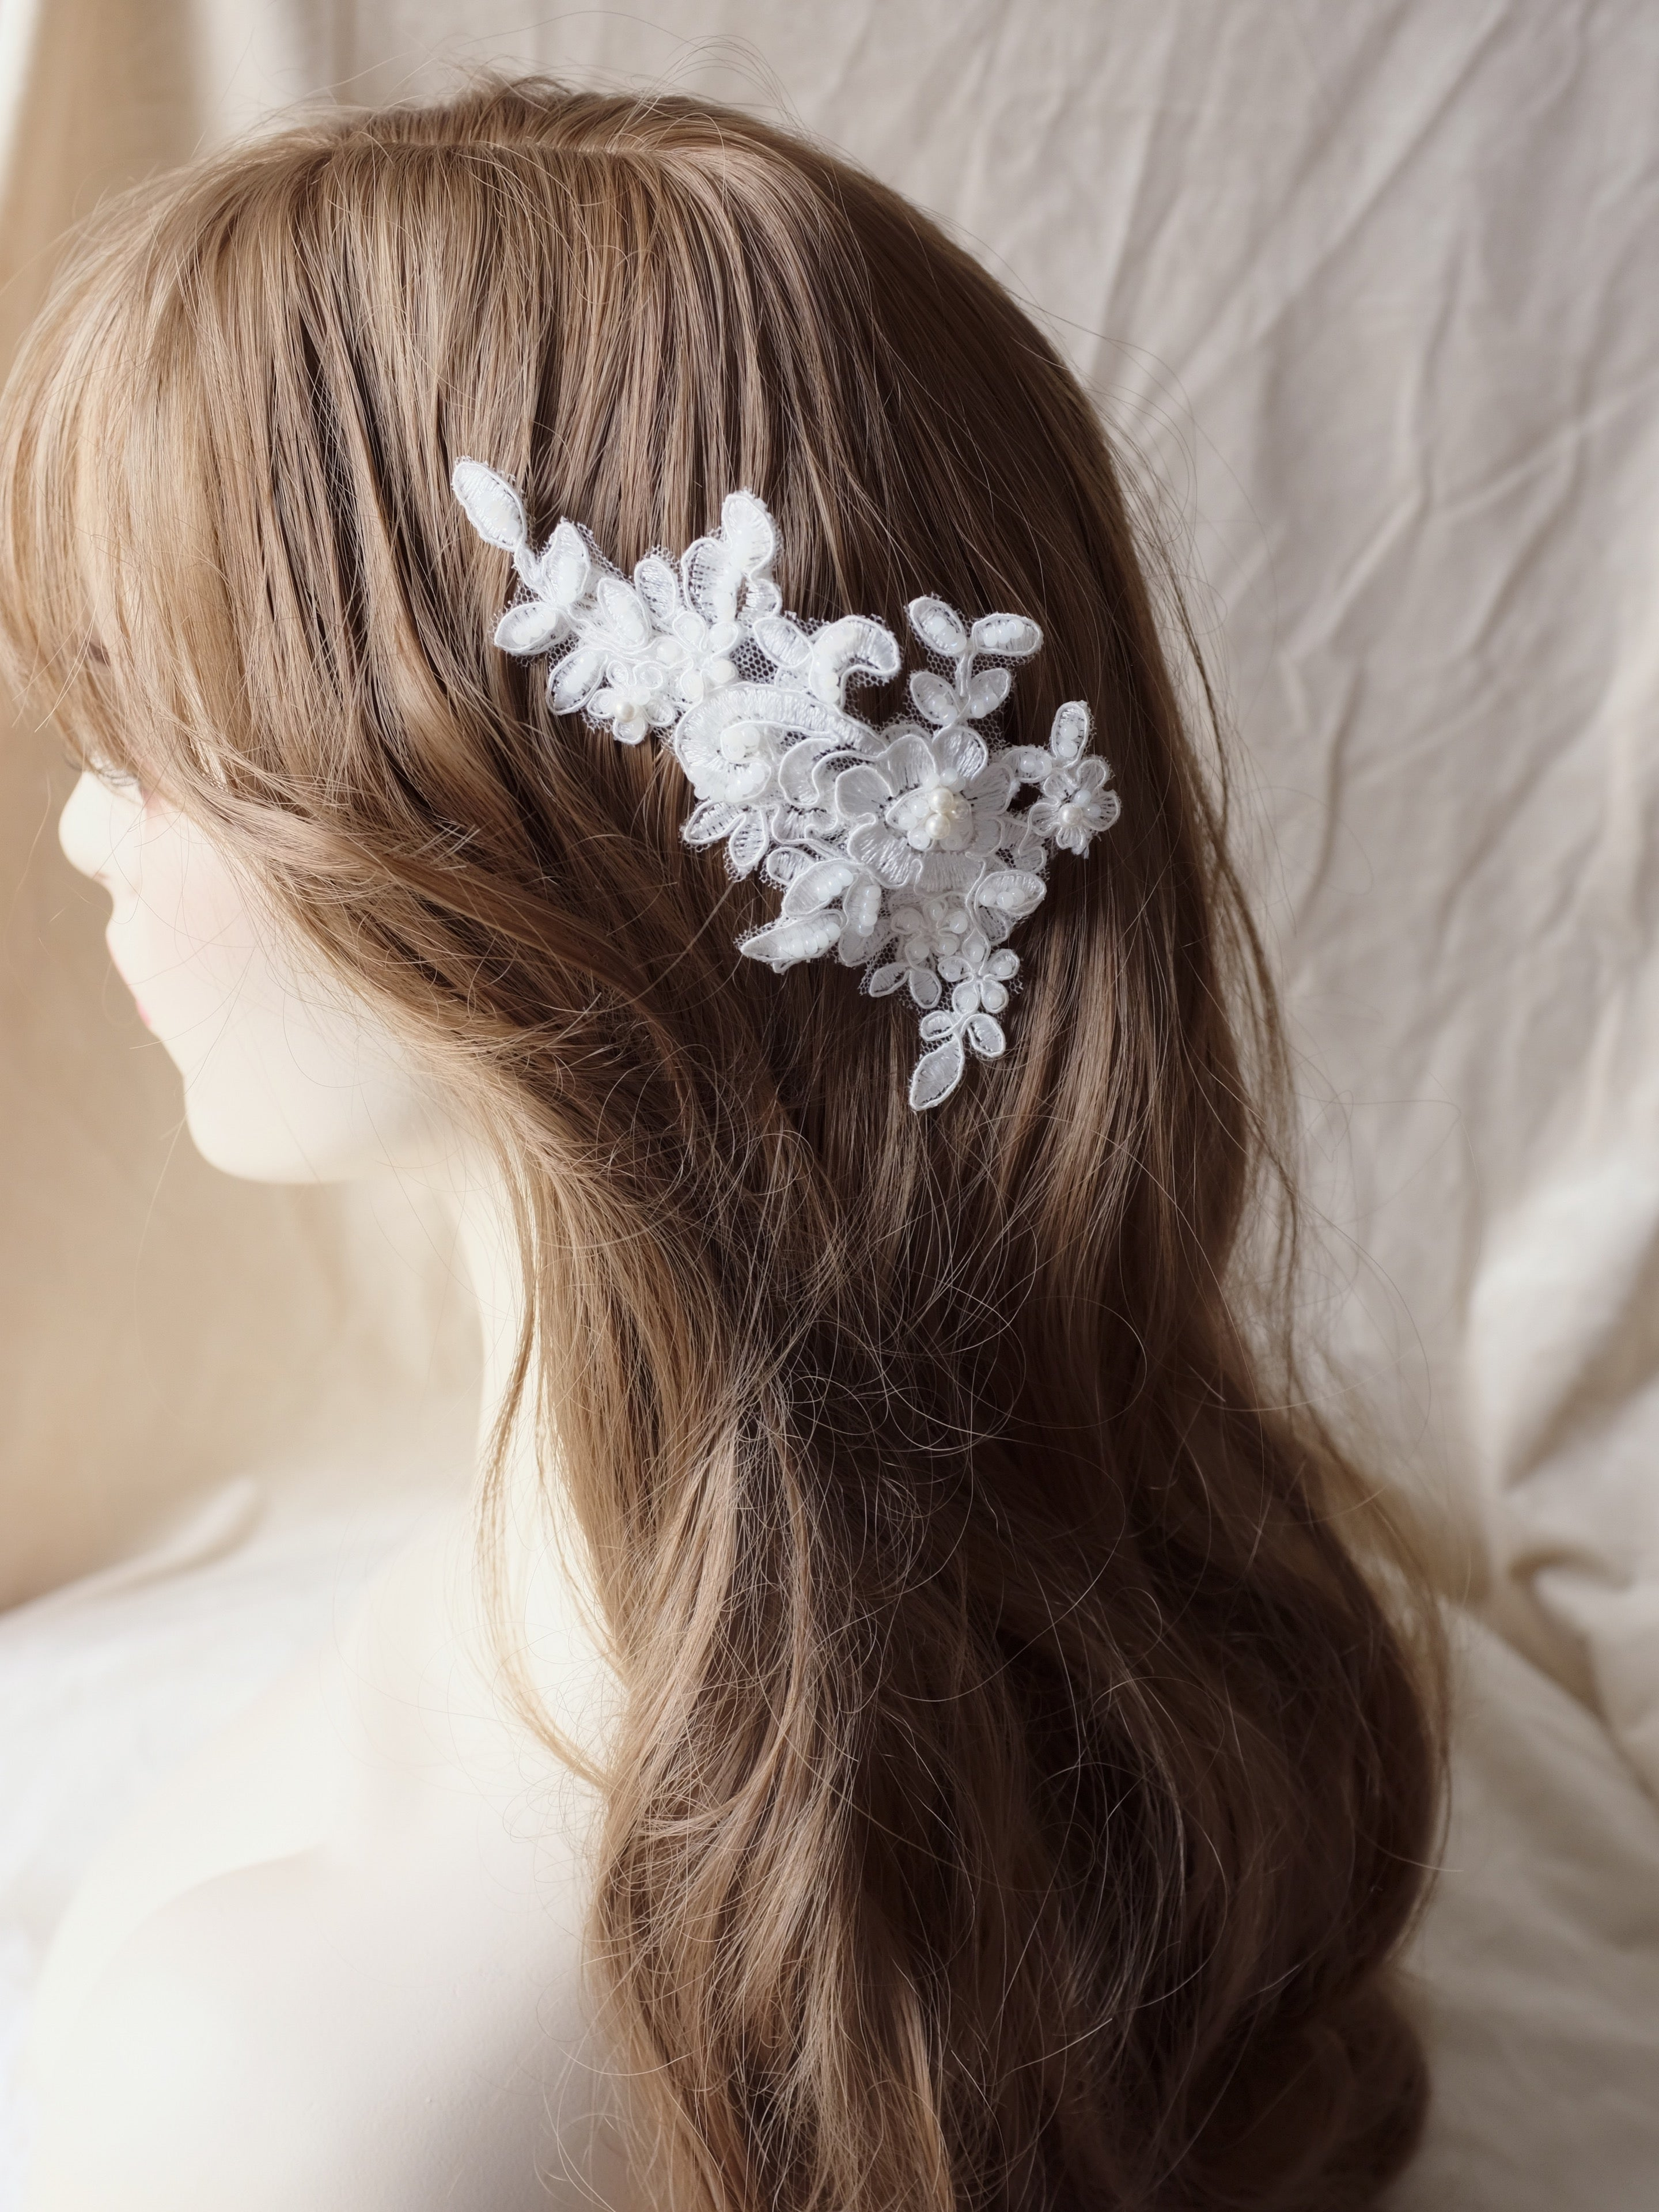 Bridal hair down hairstyle with white lace hair comb